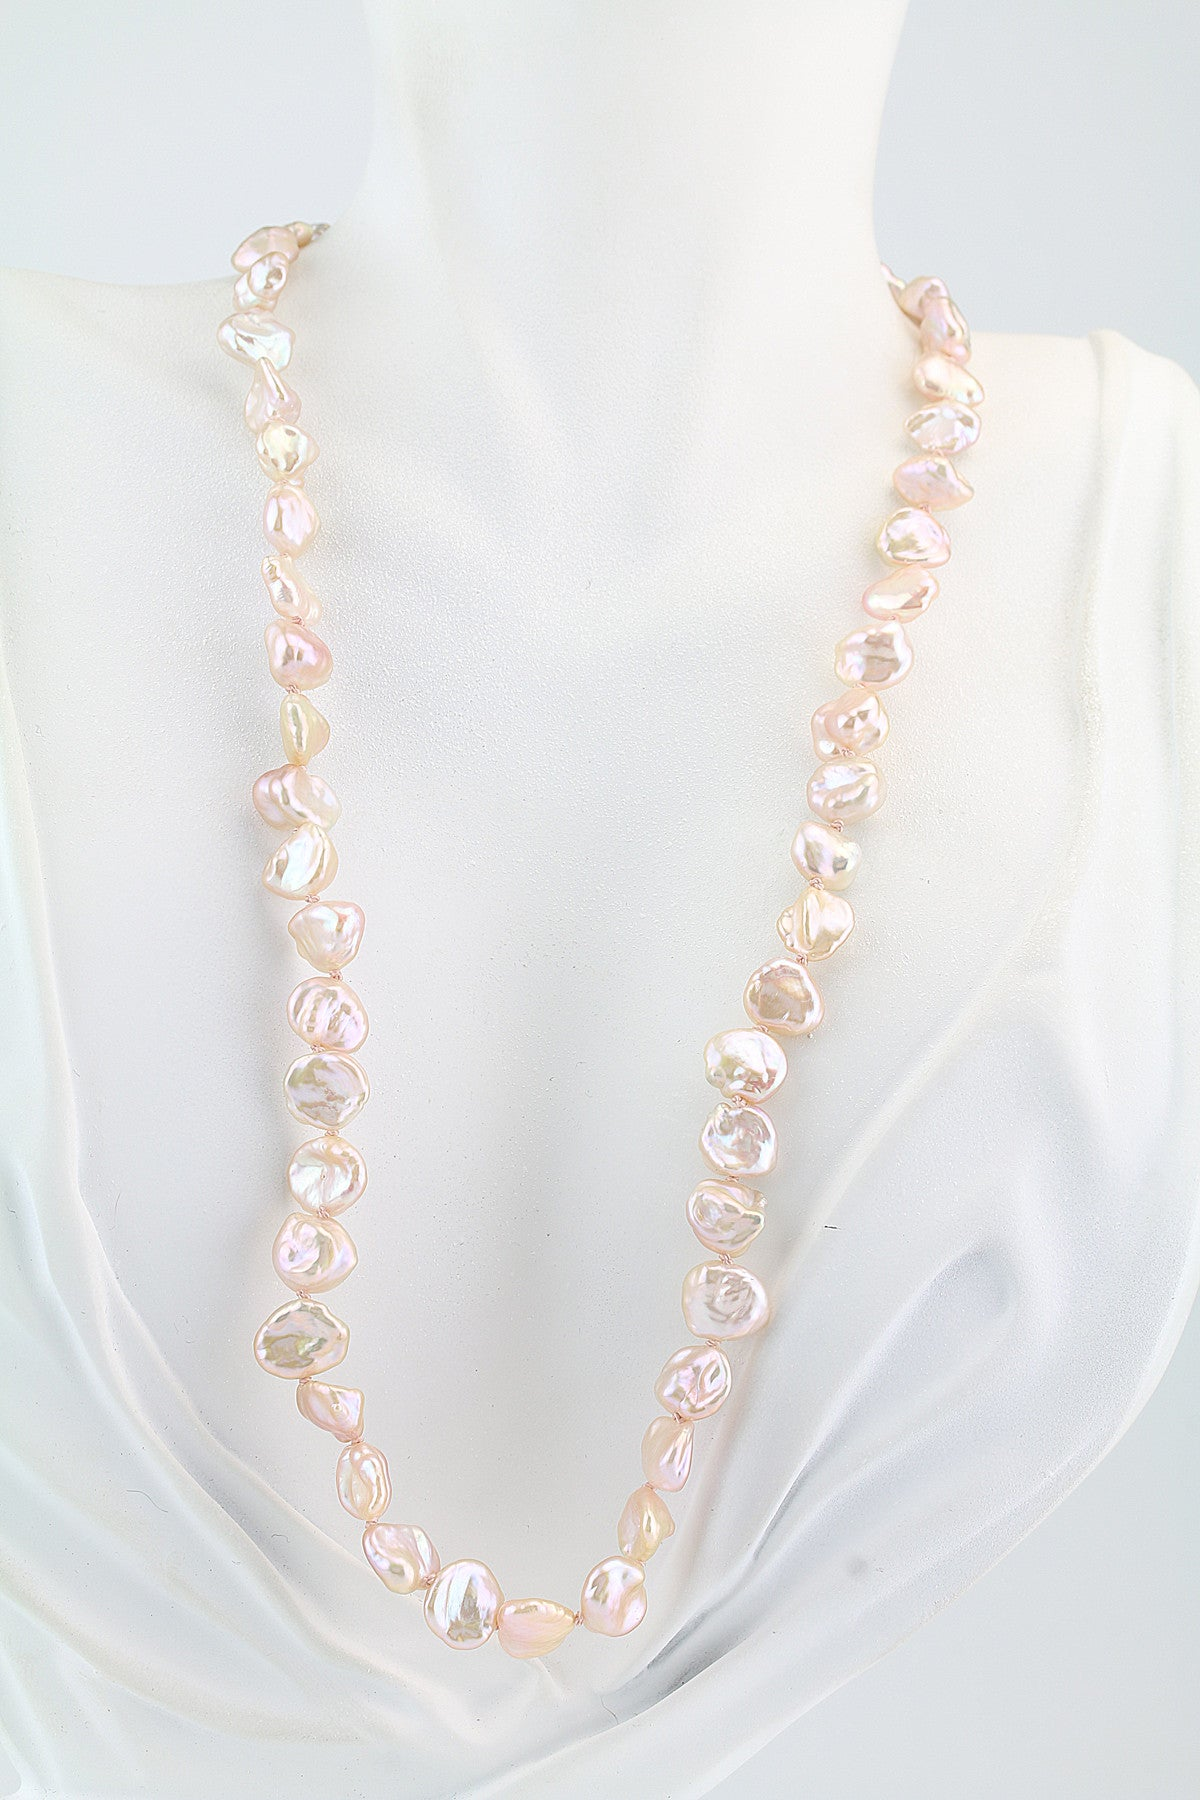 Freshwater Keshi  Pearl Necklace With Southern Gates Clasp 18.5""